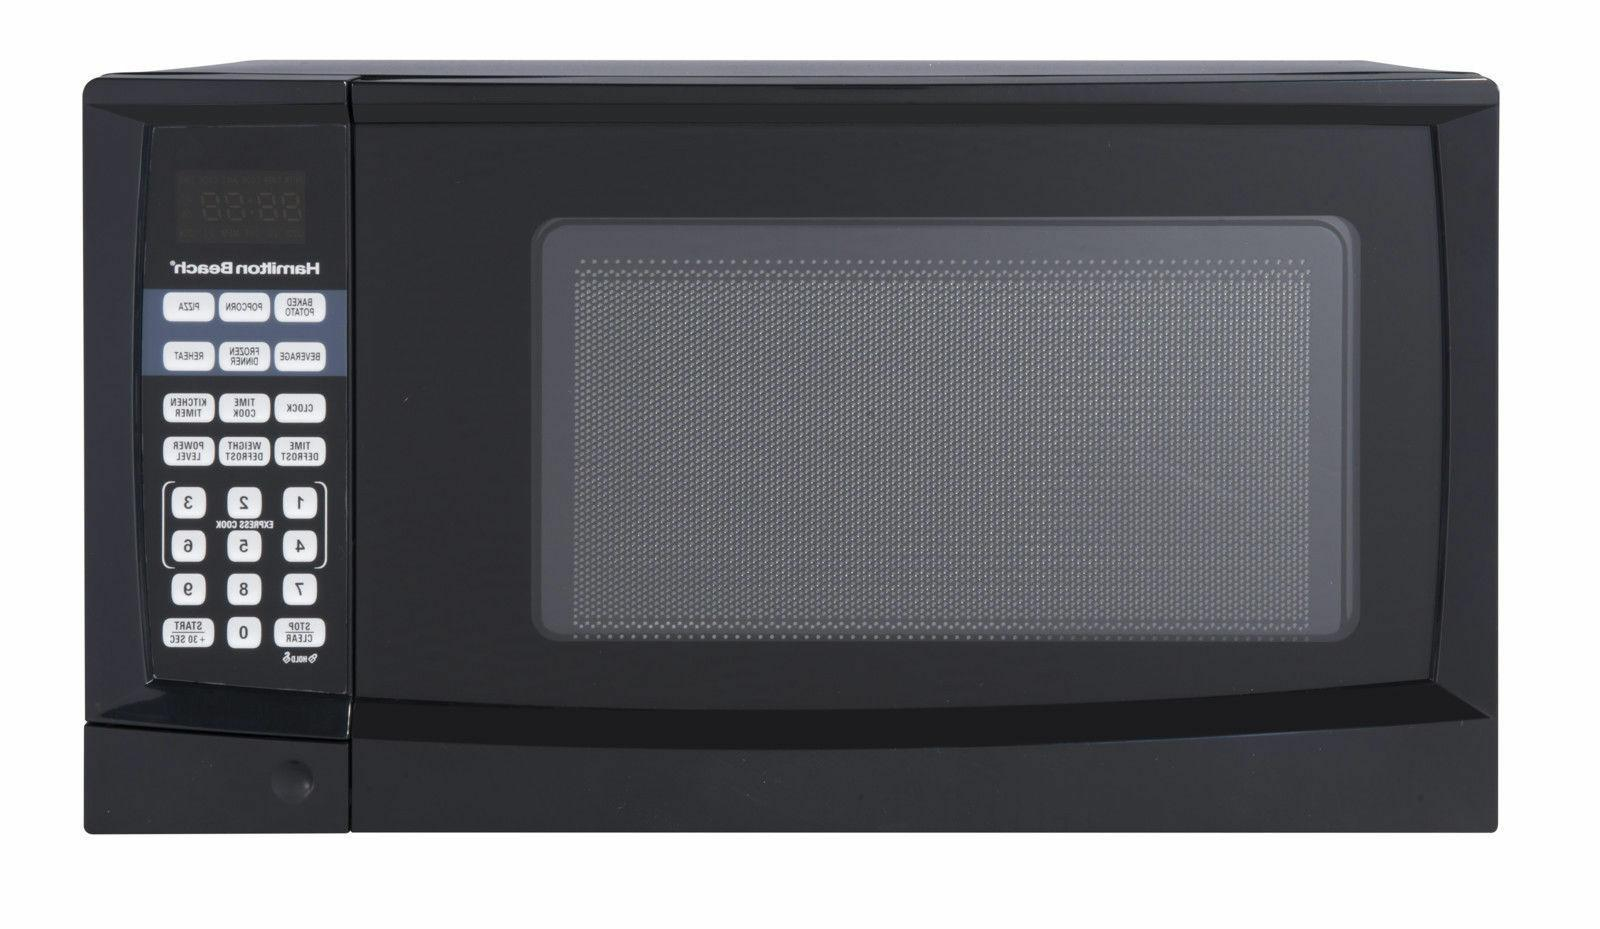 Hamilton Beach - Digital Microwave - 0.9 Cu Ft - Black - HB-